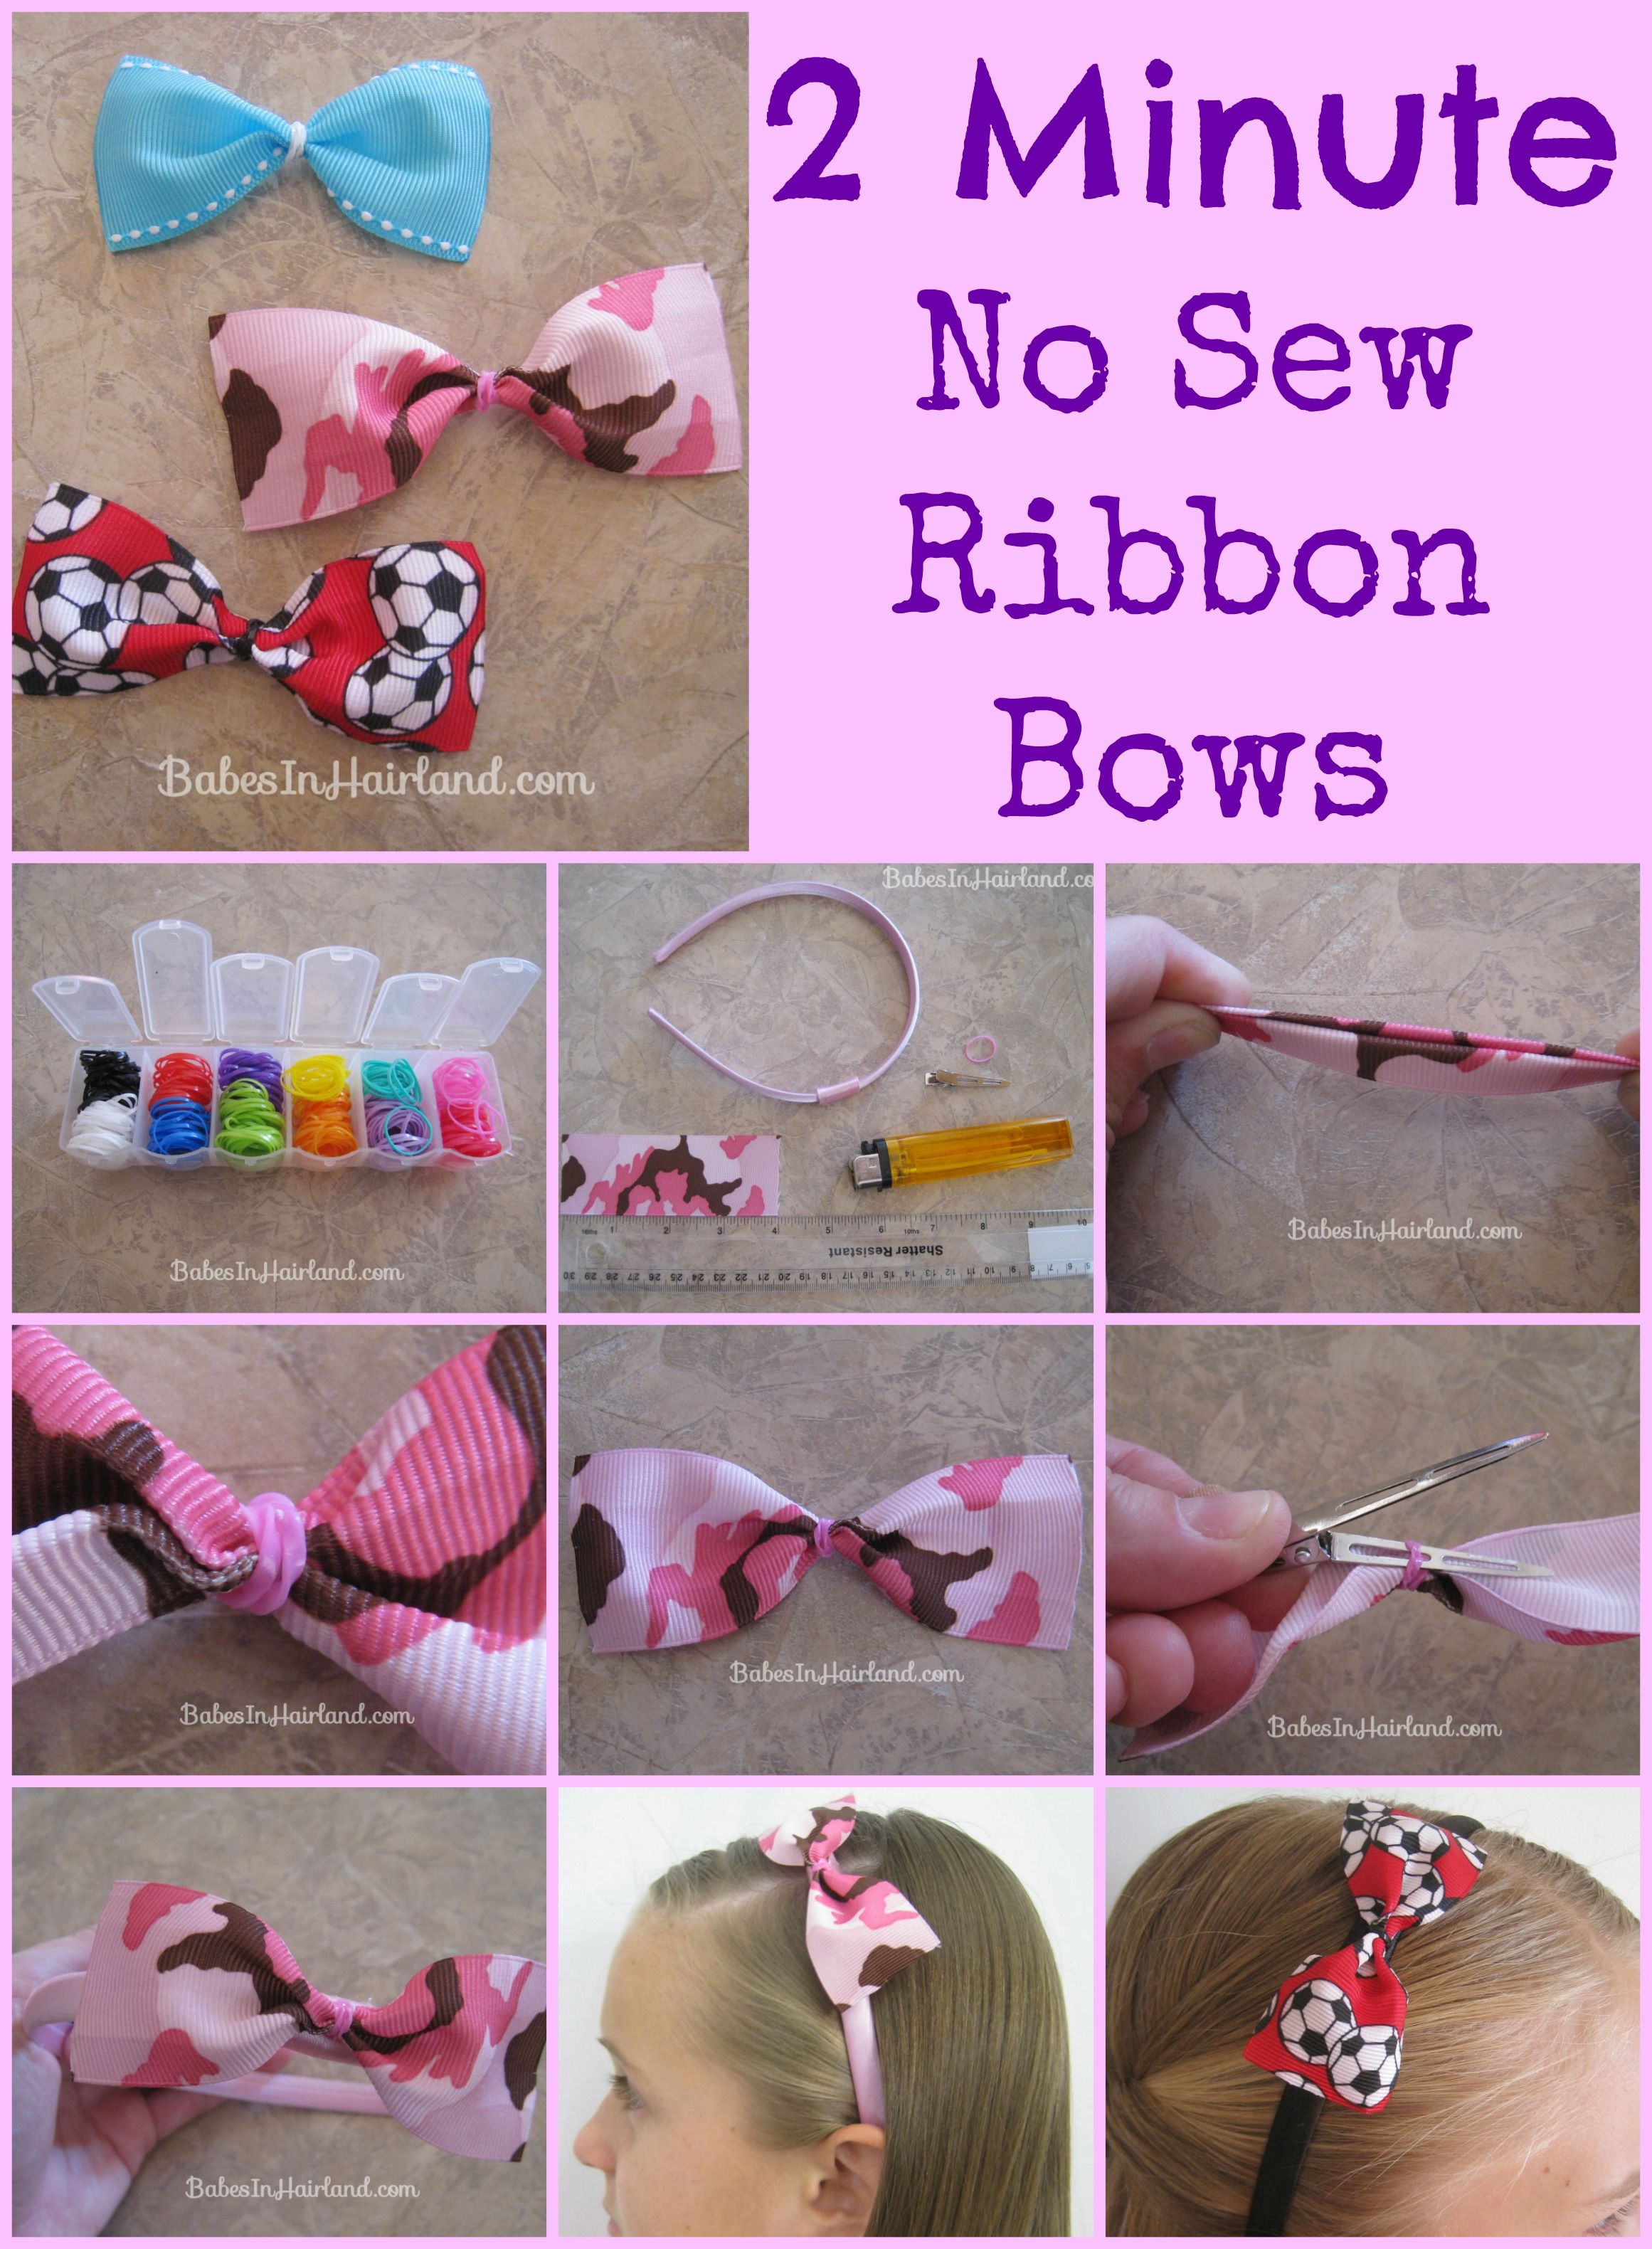 Hair bow button accessories - 2 Minute No Sew Ribbon Bows From Babesinhairland Com Bows Accessories Hair